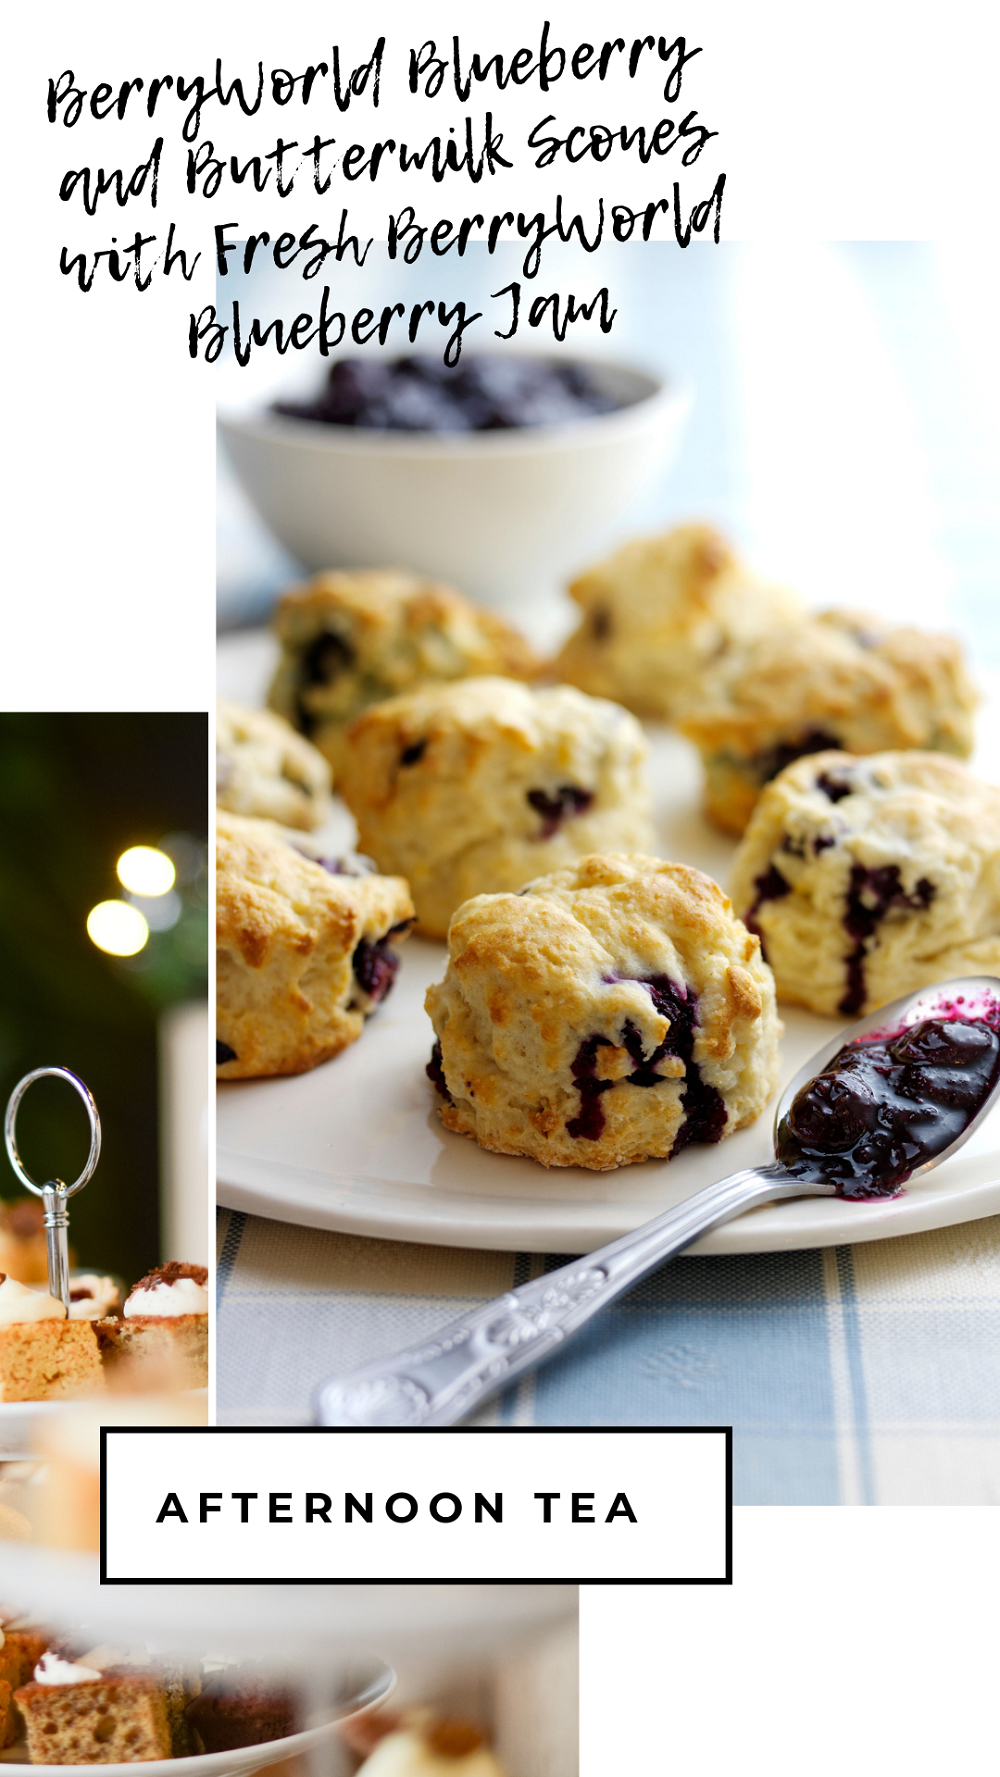 BerryWorld Blueberry   and Buttermilk Scones with Fresh BerryWorld Blueberry Jam